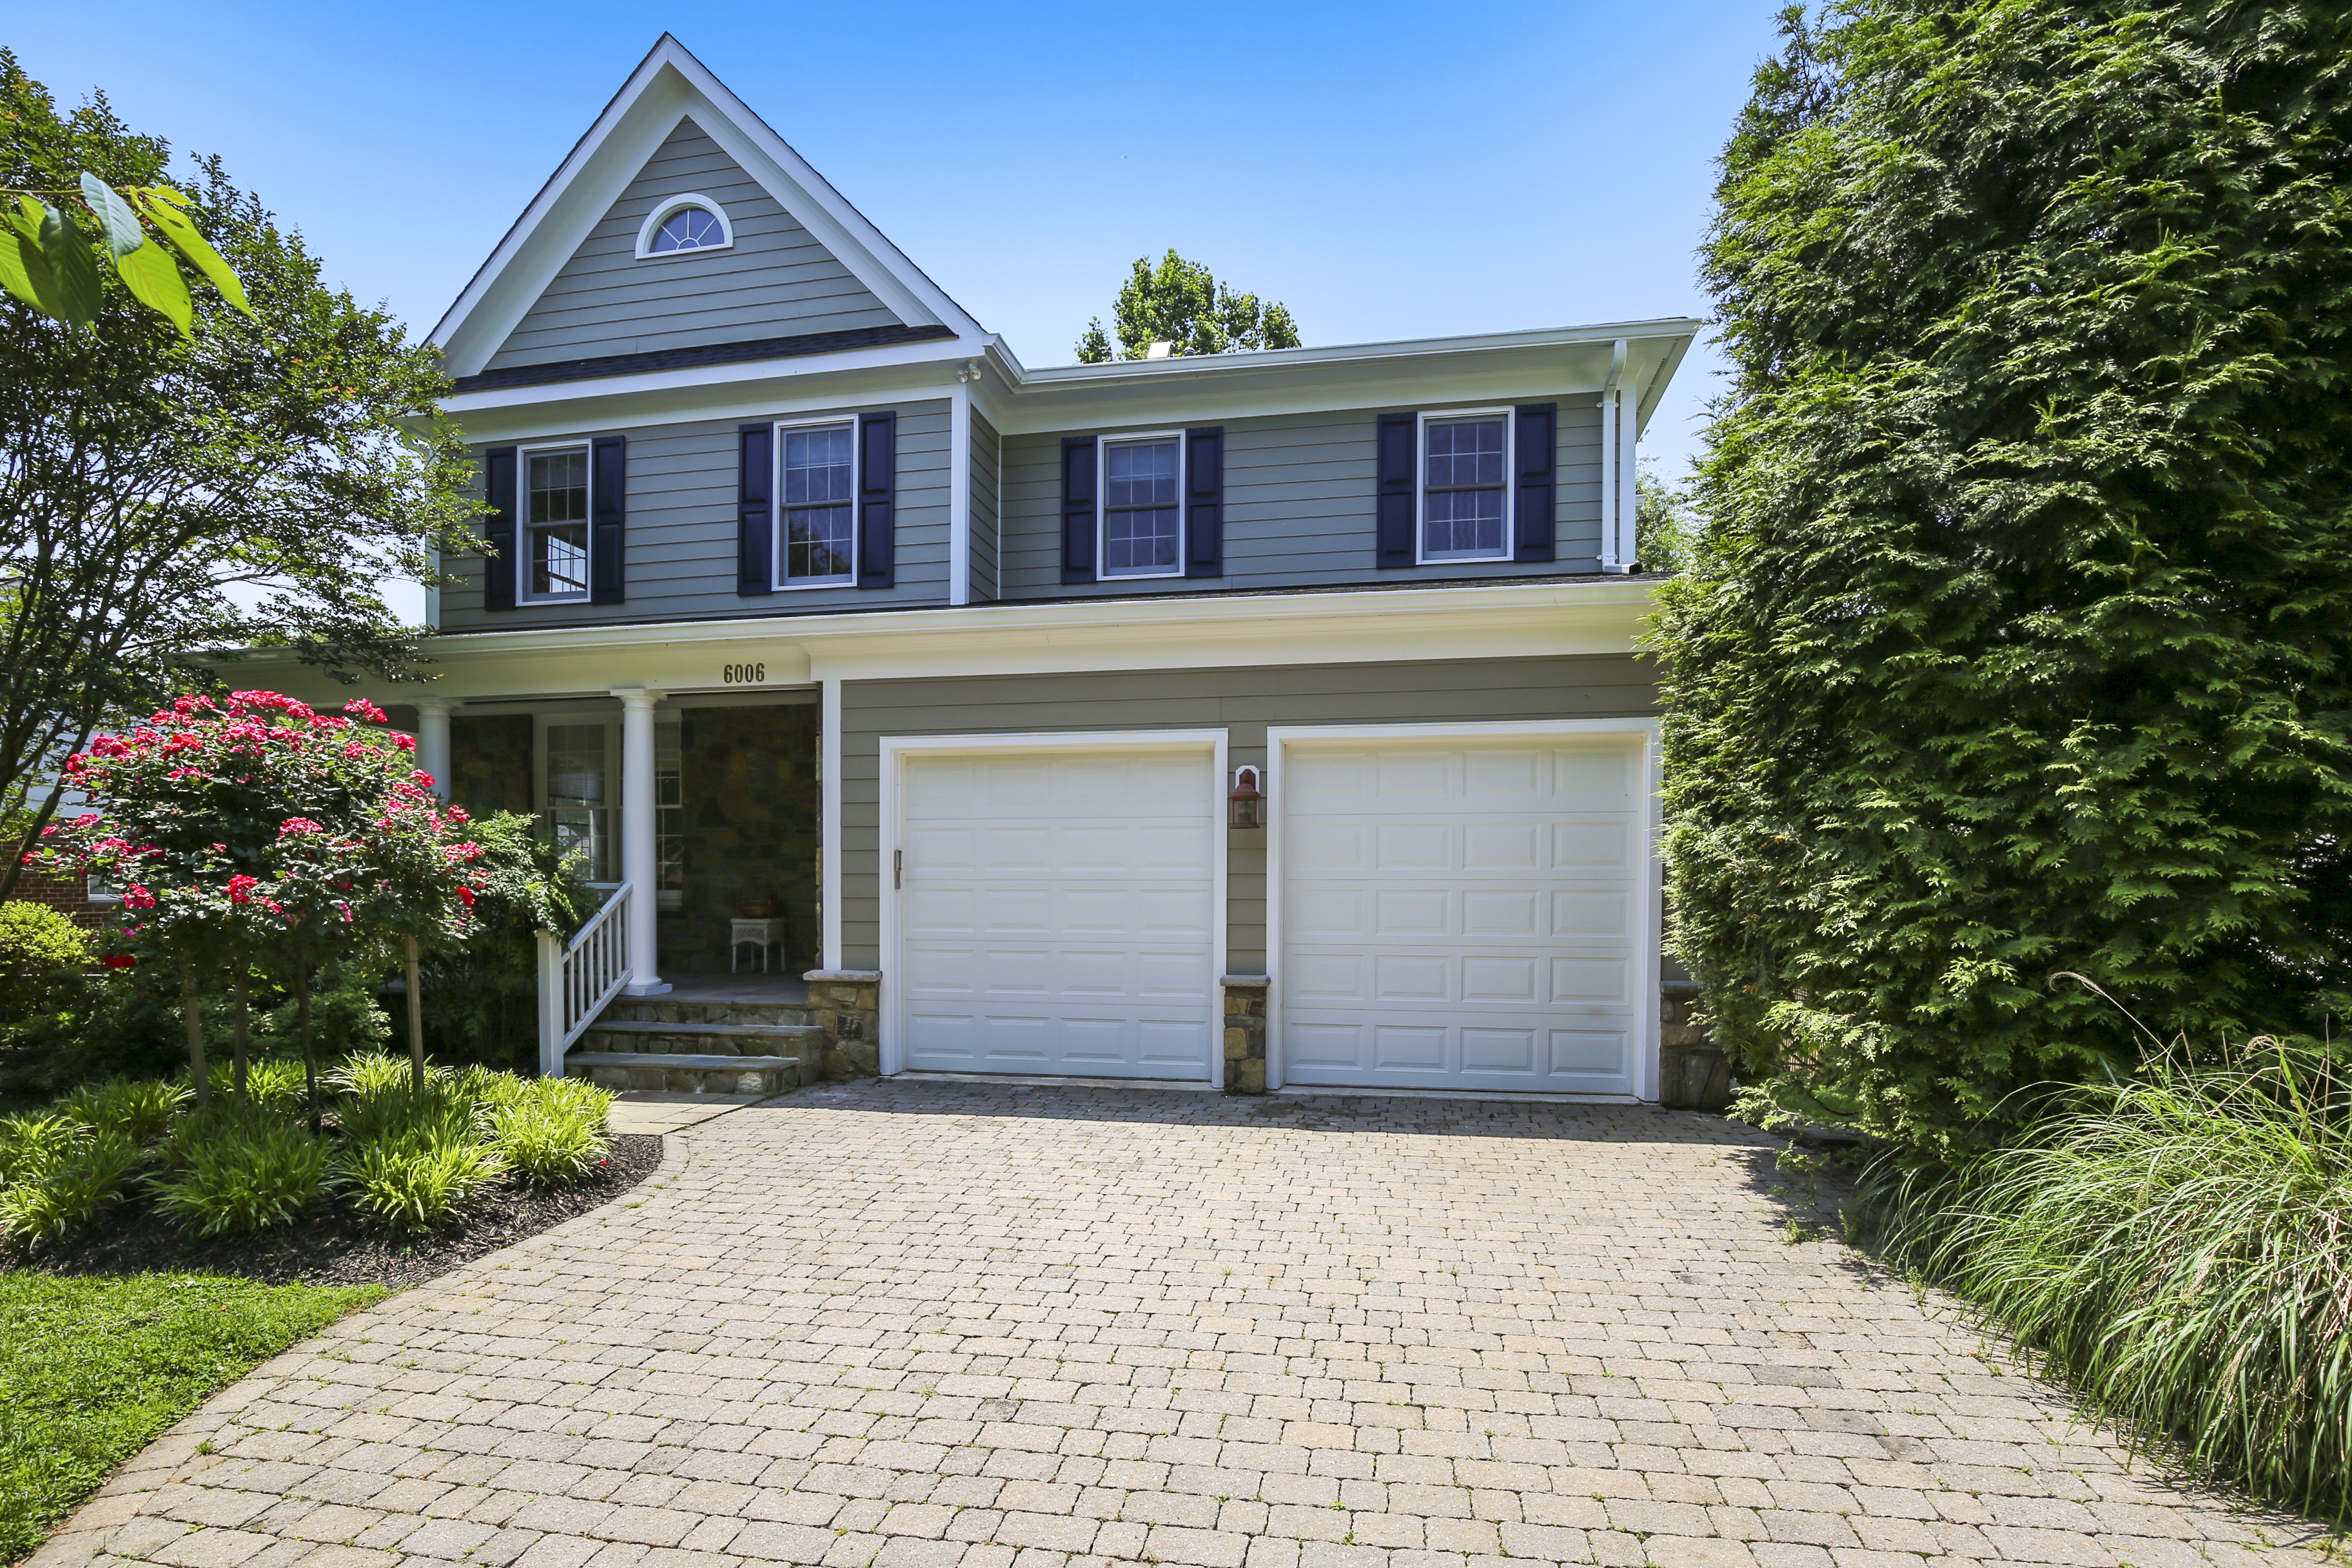 JUST LISTED IN BETHESDA: 6006 Roosevelt St